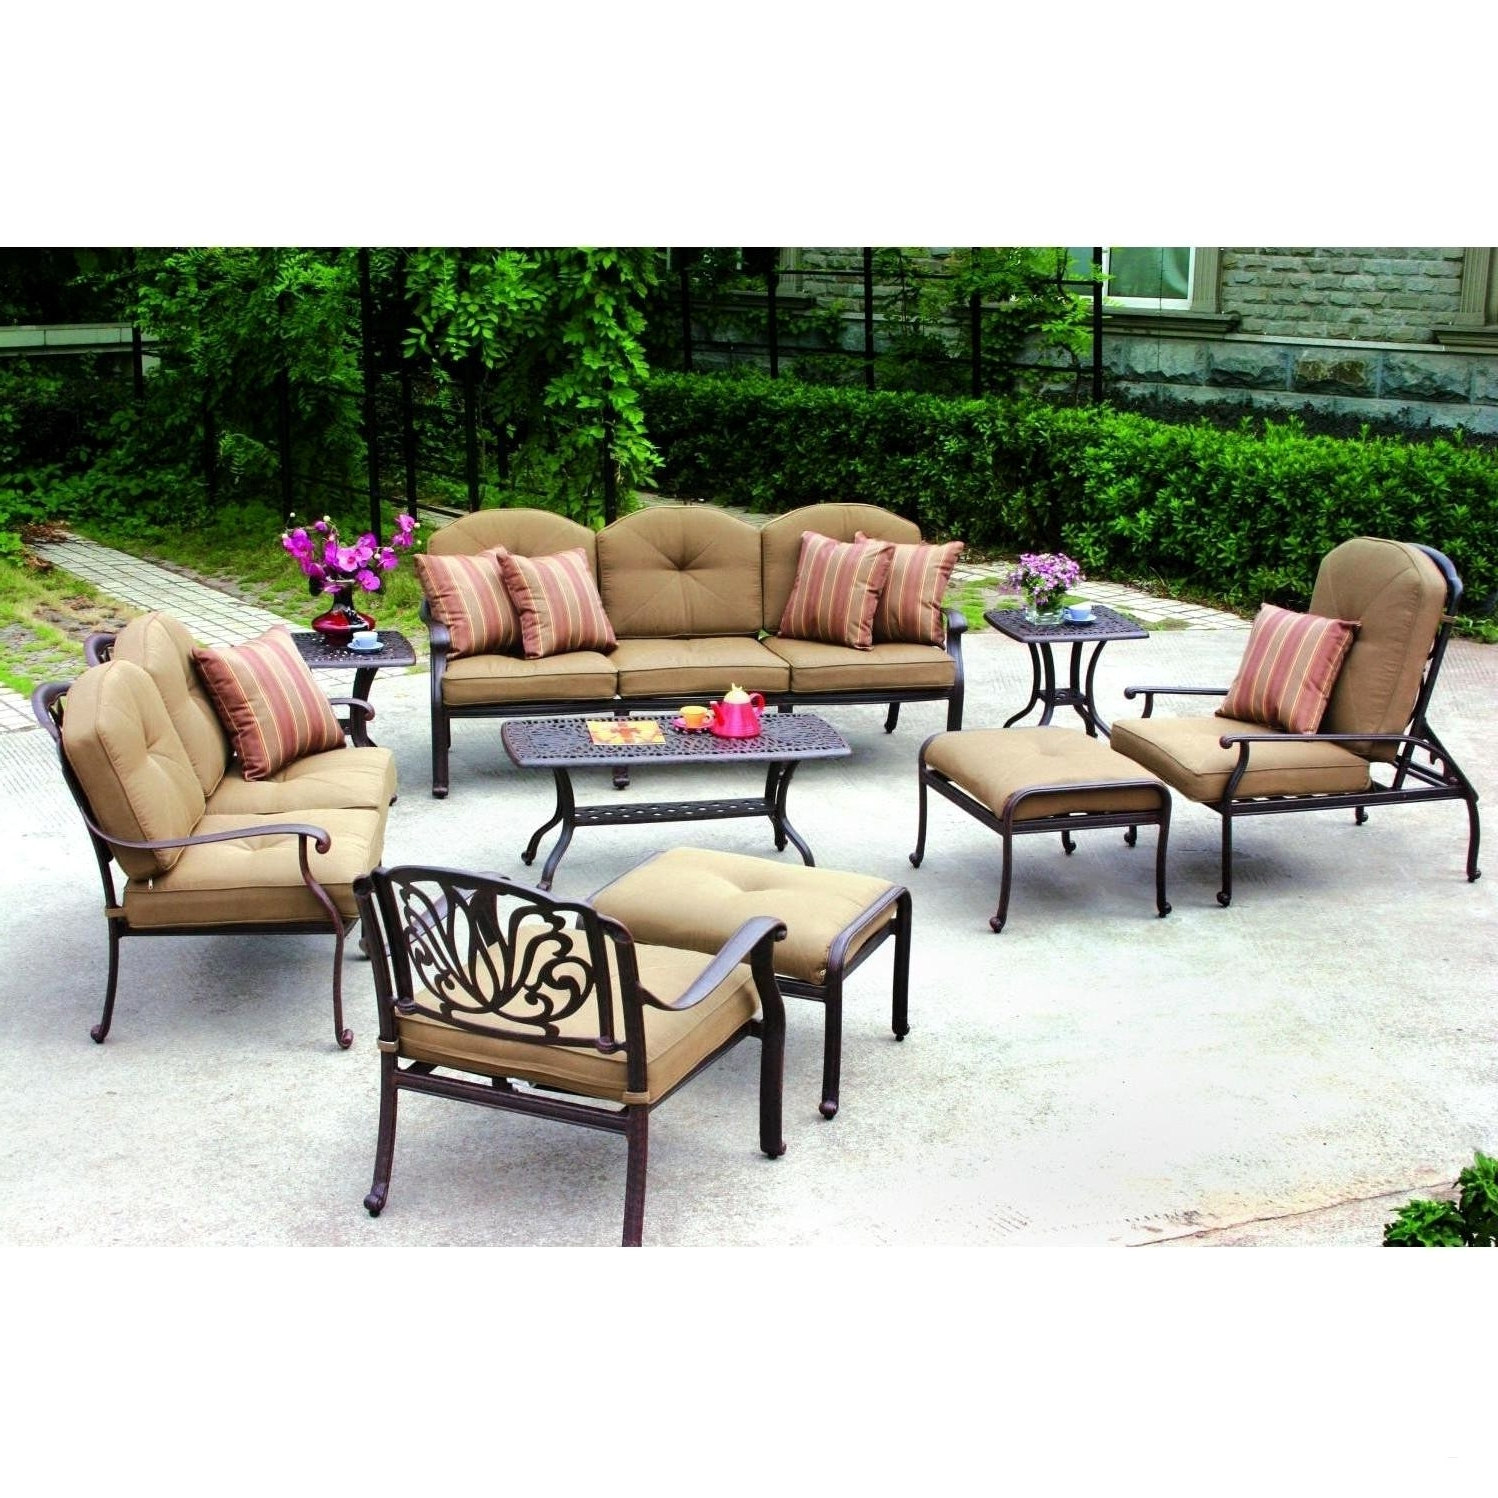 Preferred Target Patio Furniture Conversation Sets In Outdoor Fire Pit Seating Conversation Chairs 3 Piece Patio Set (View 4 of 15)